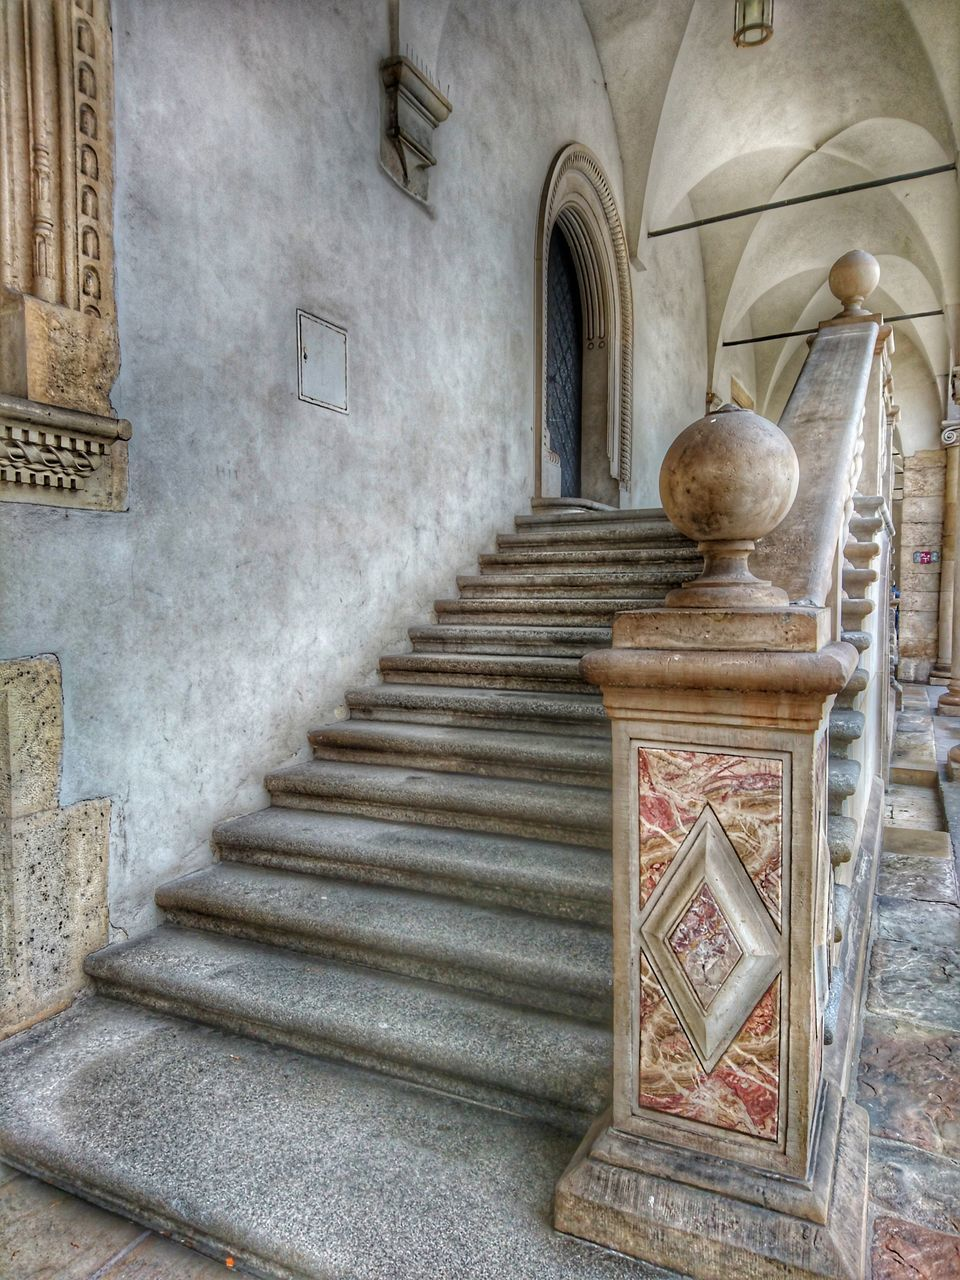 steps, staircase, architecture, no people, steps and staircases, built structure, day, outdoors, building exterior, close-up